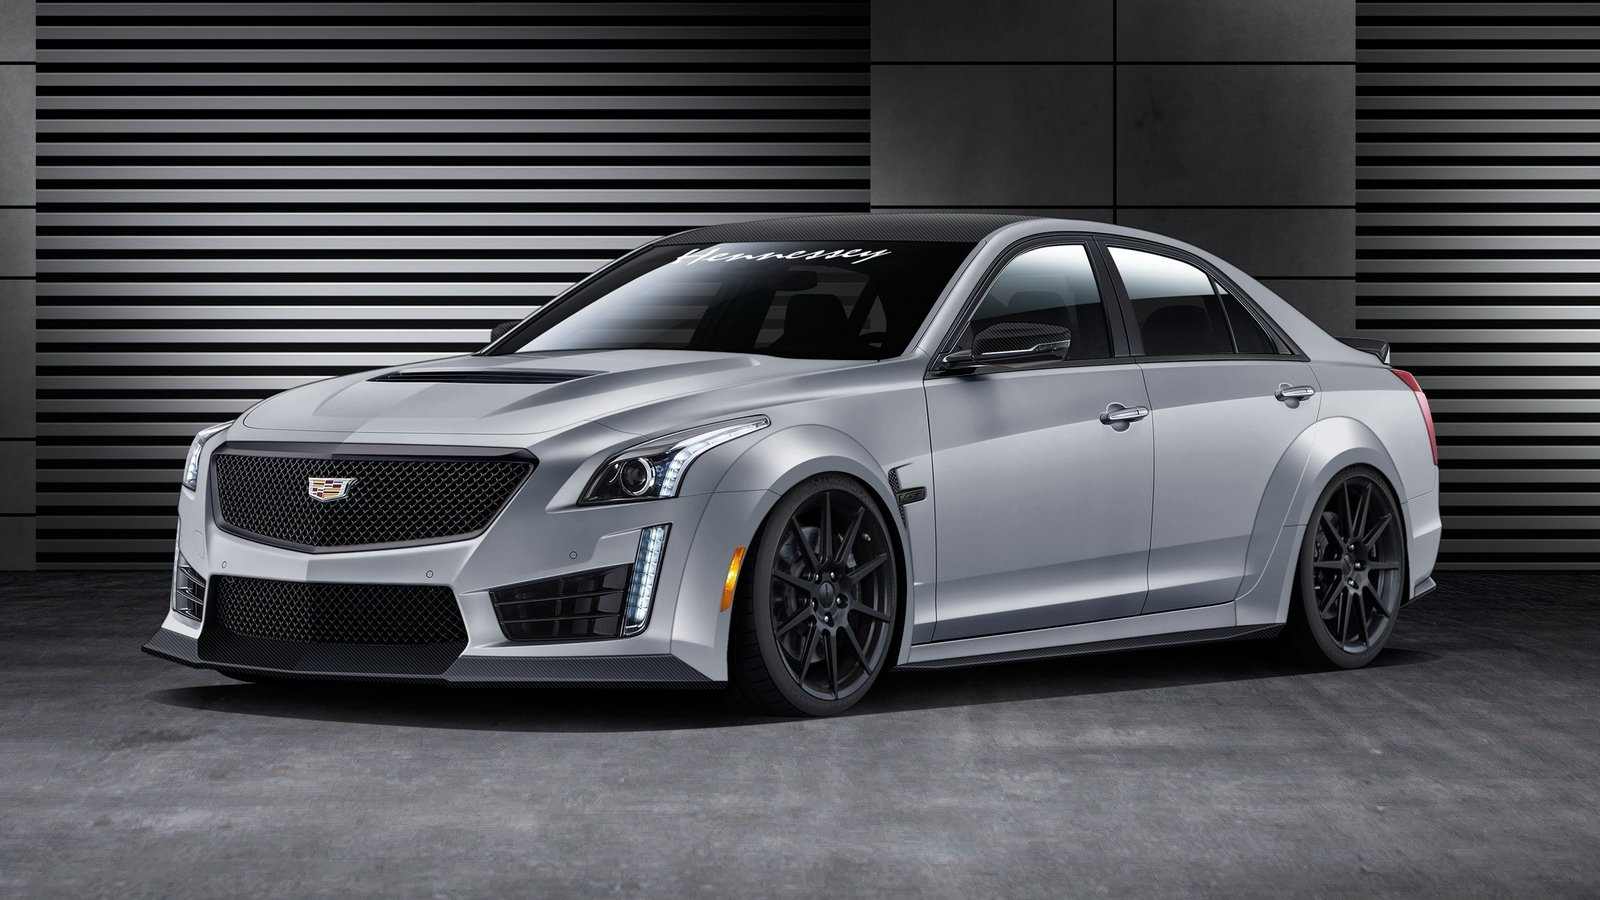 All Types Of Cars >> 2016 Cadillac CTS-V By Hennessey | Top Speed